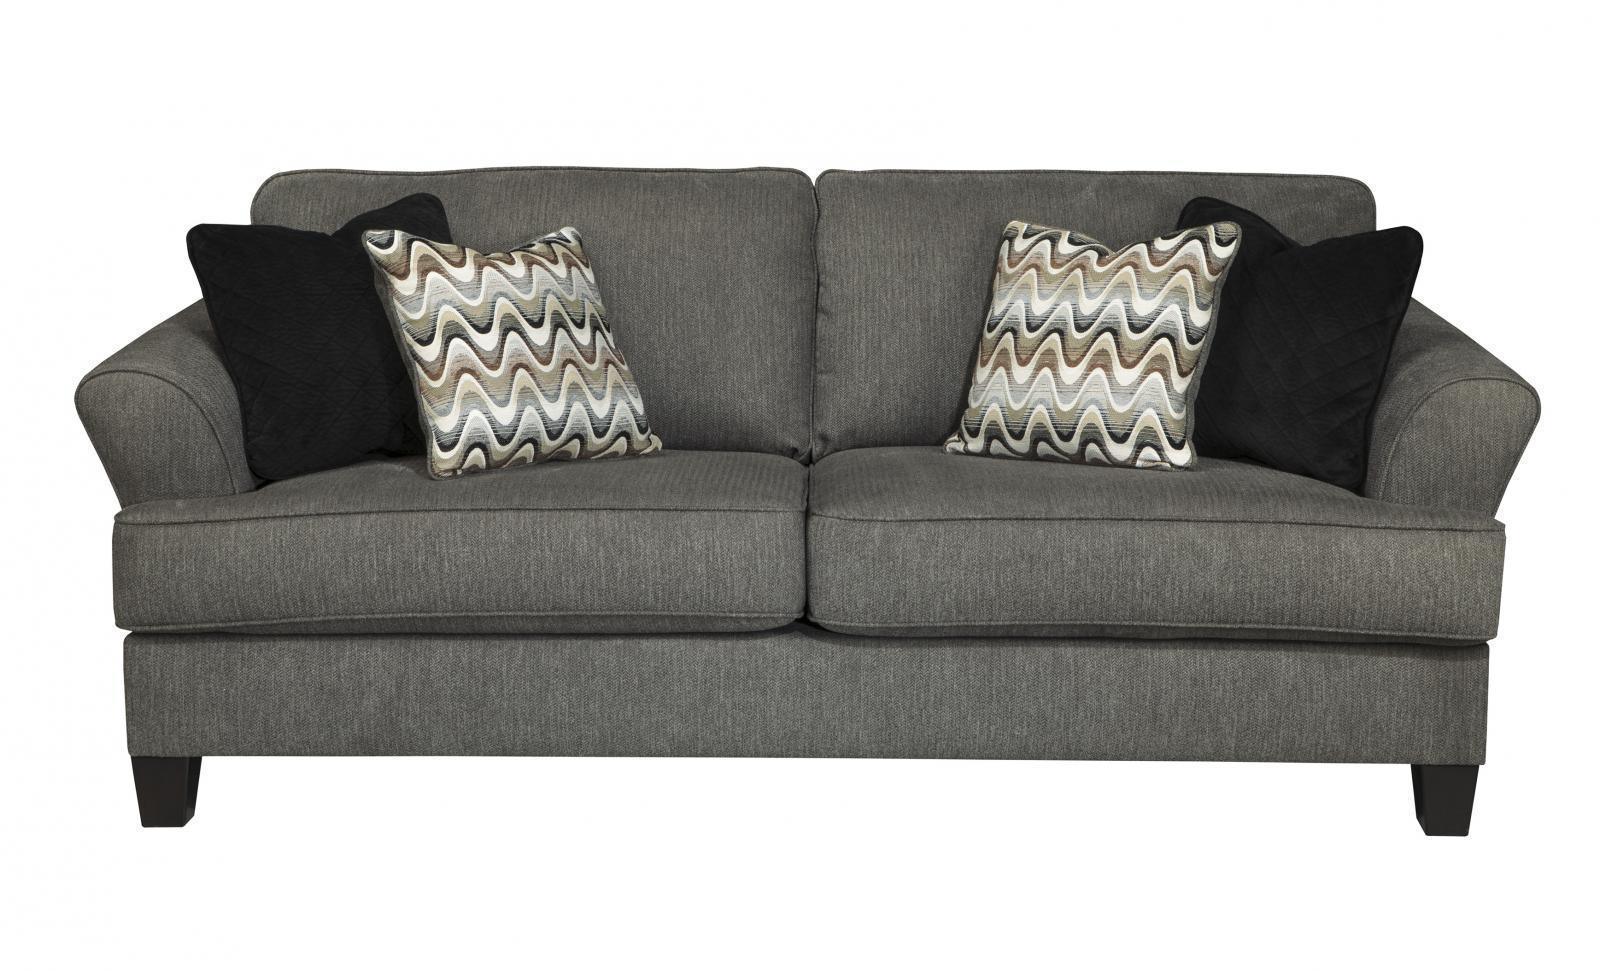 Ashley Gayler Living Room Set 3pcs in Steel Upholstery Fabric Contemporary Style